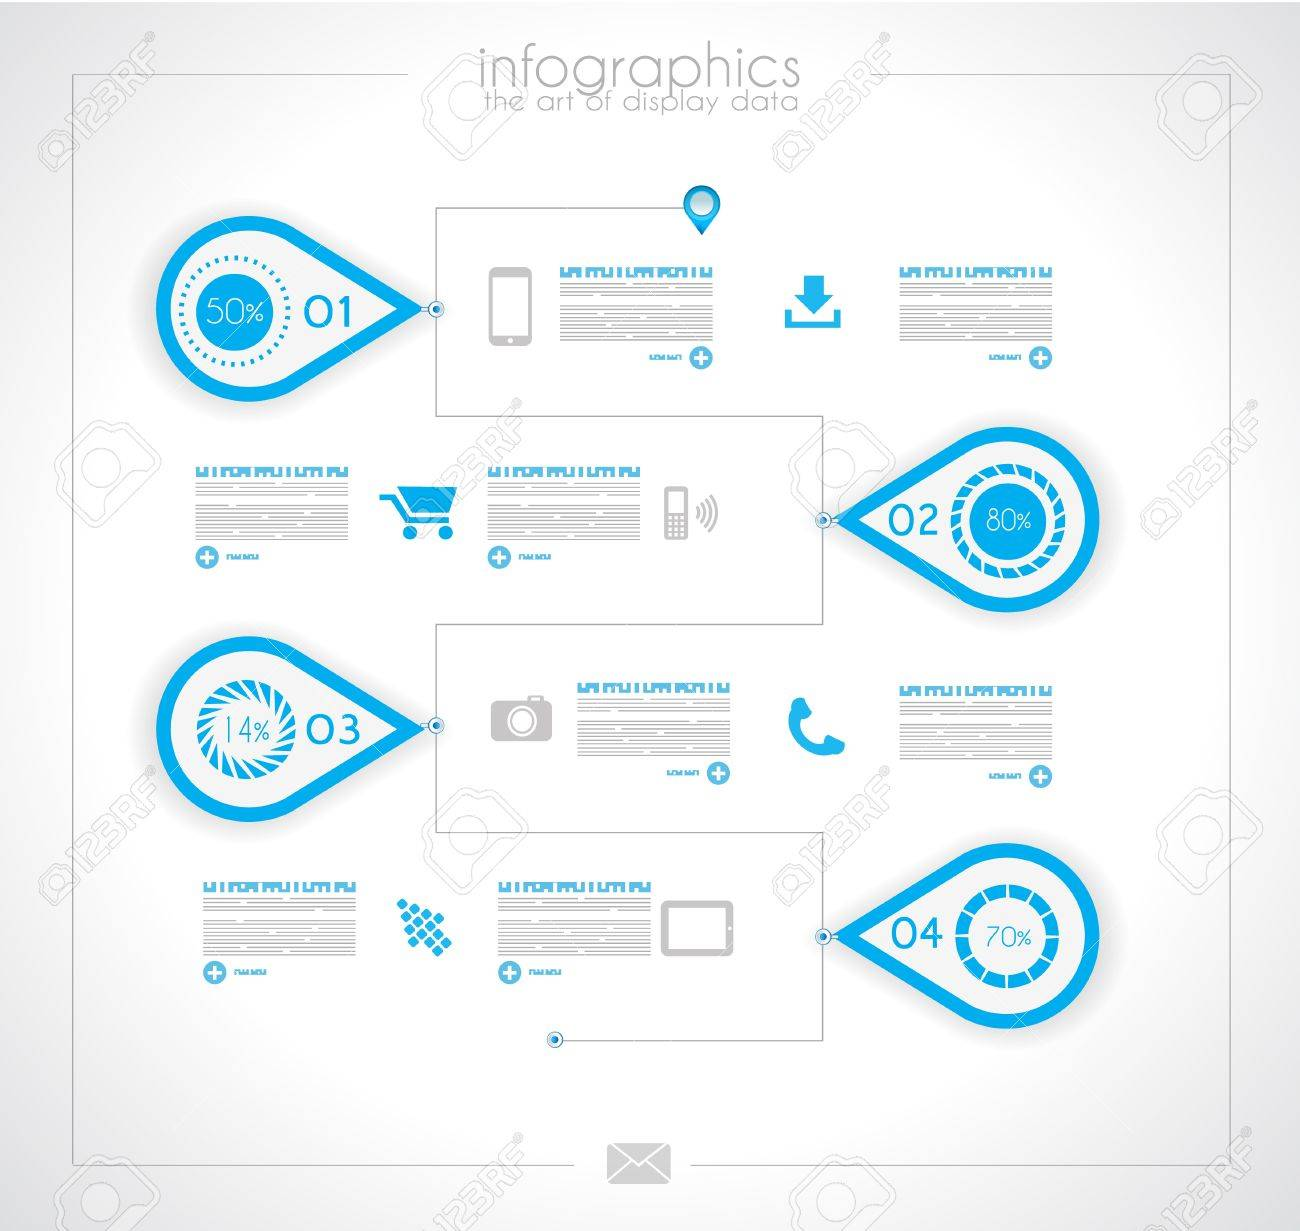 Infographic timeline design template with paper tags. Idea to display information, ranking and statistics with orginal and modern style. Stock Vector - 19335942